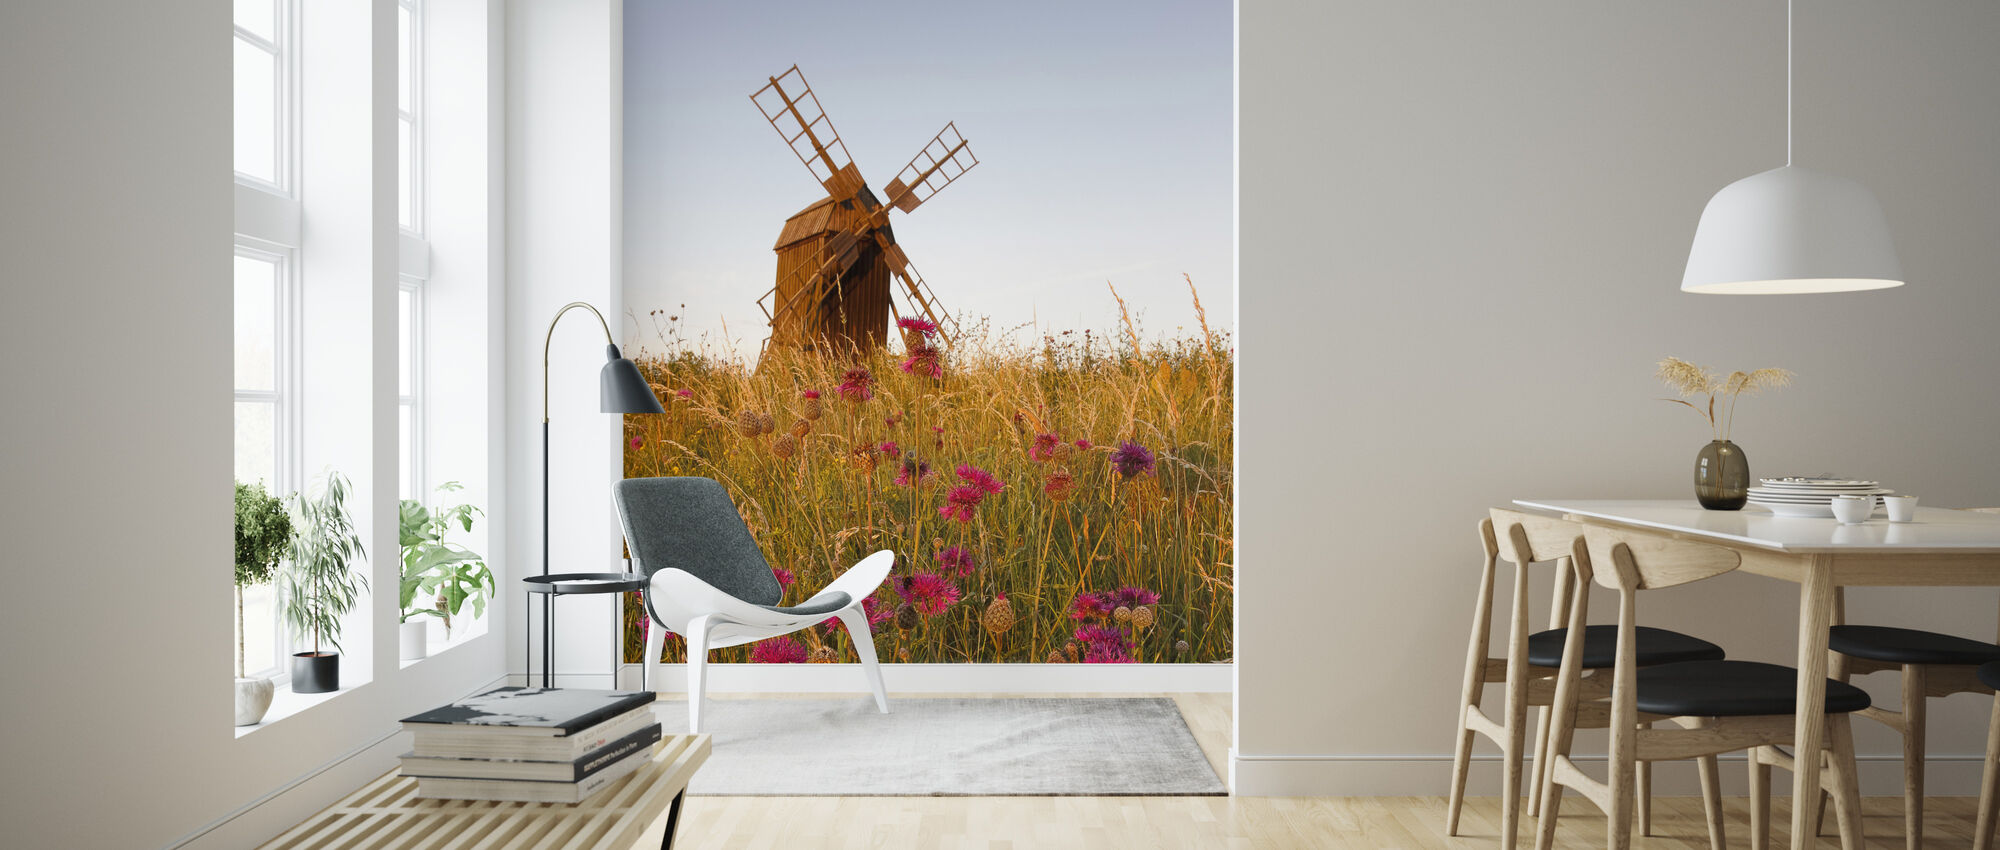 Grainy Windmill - Wallpaper - Living Room